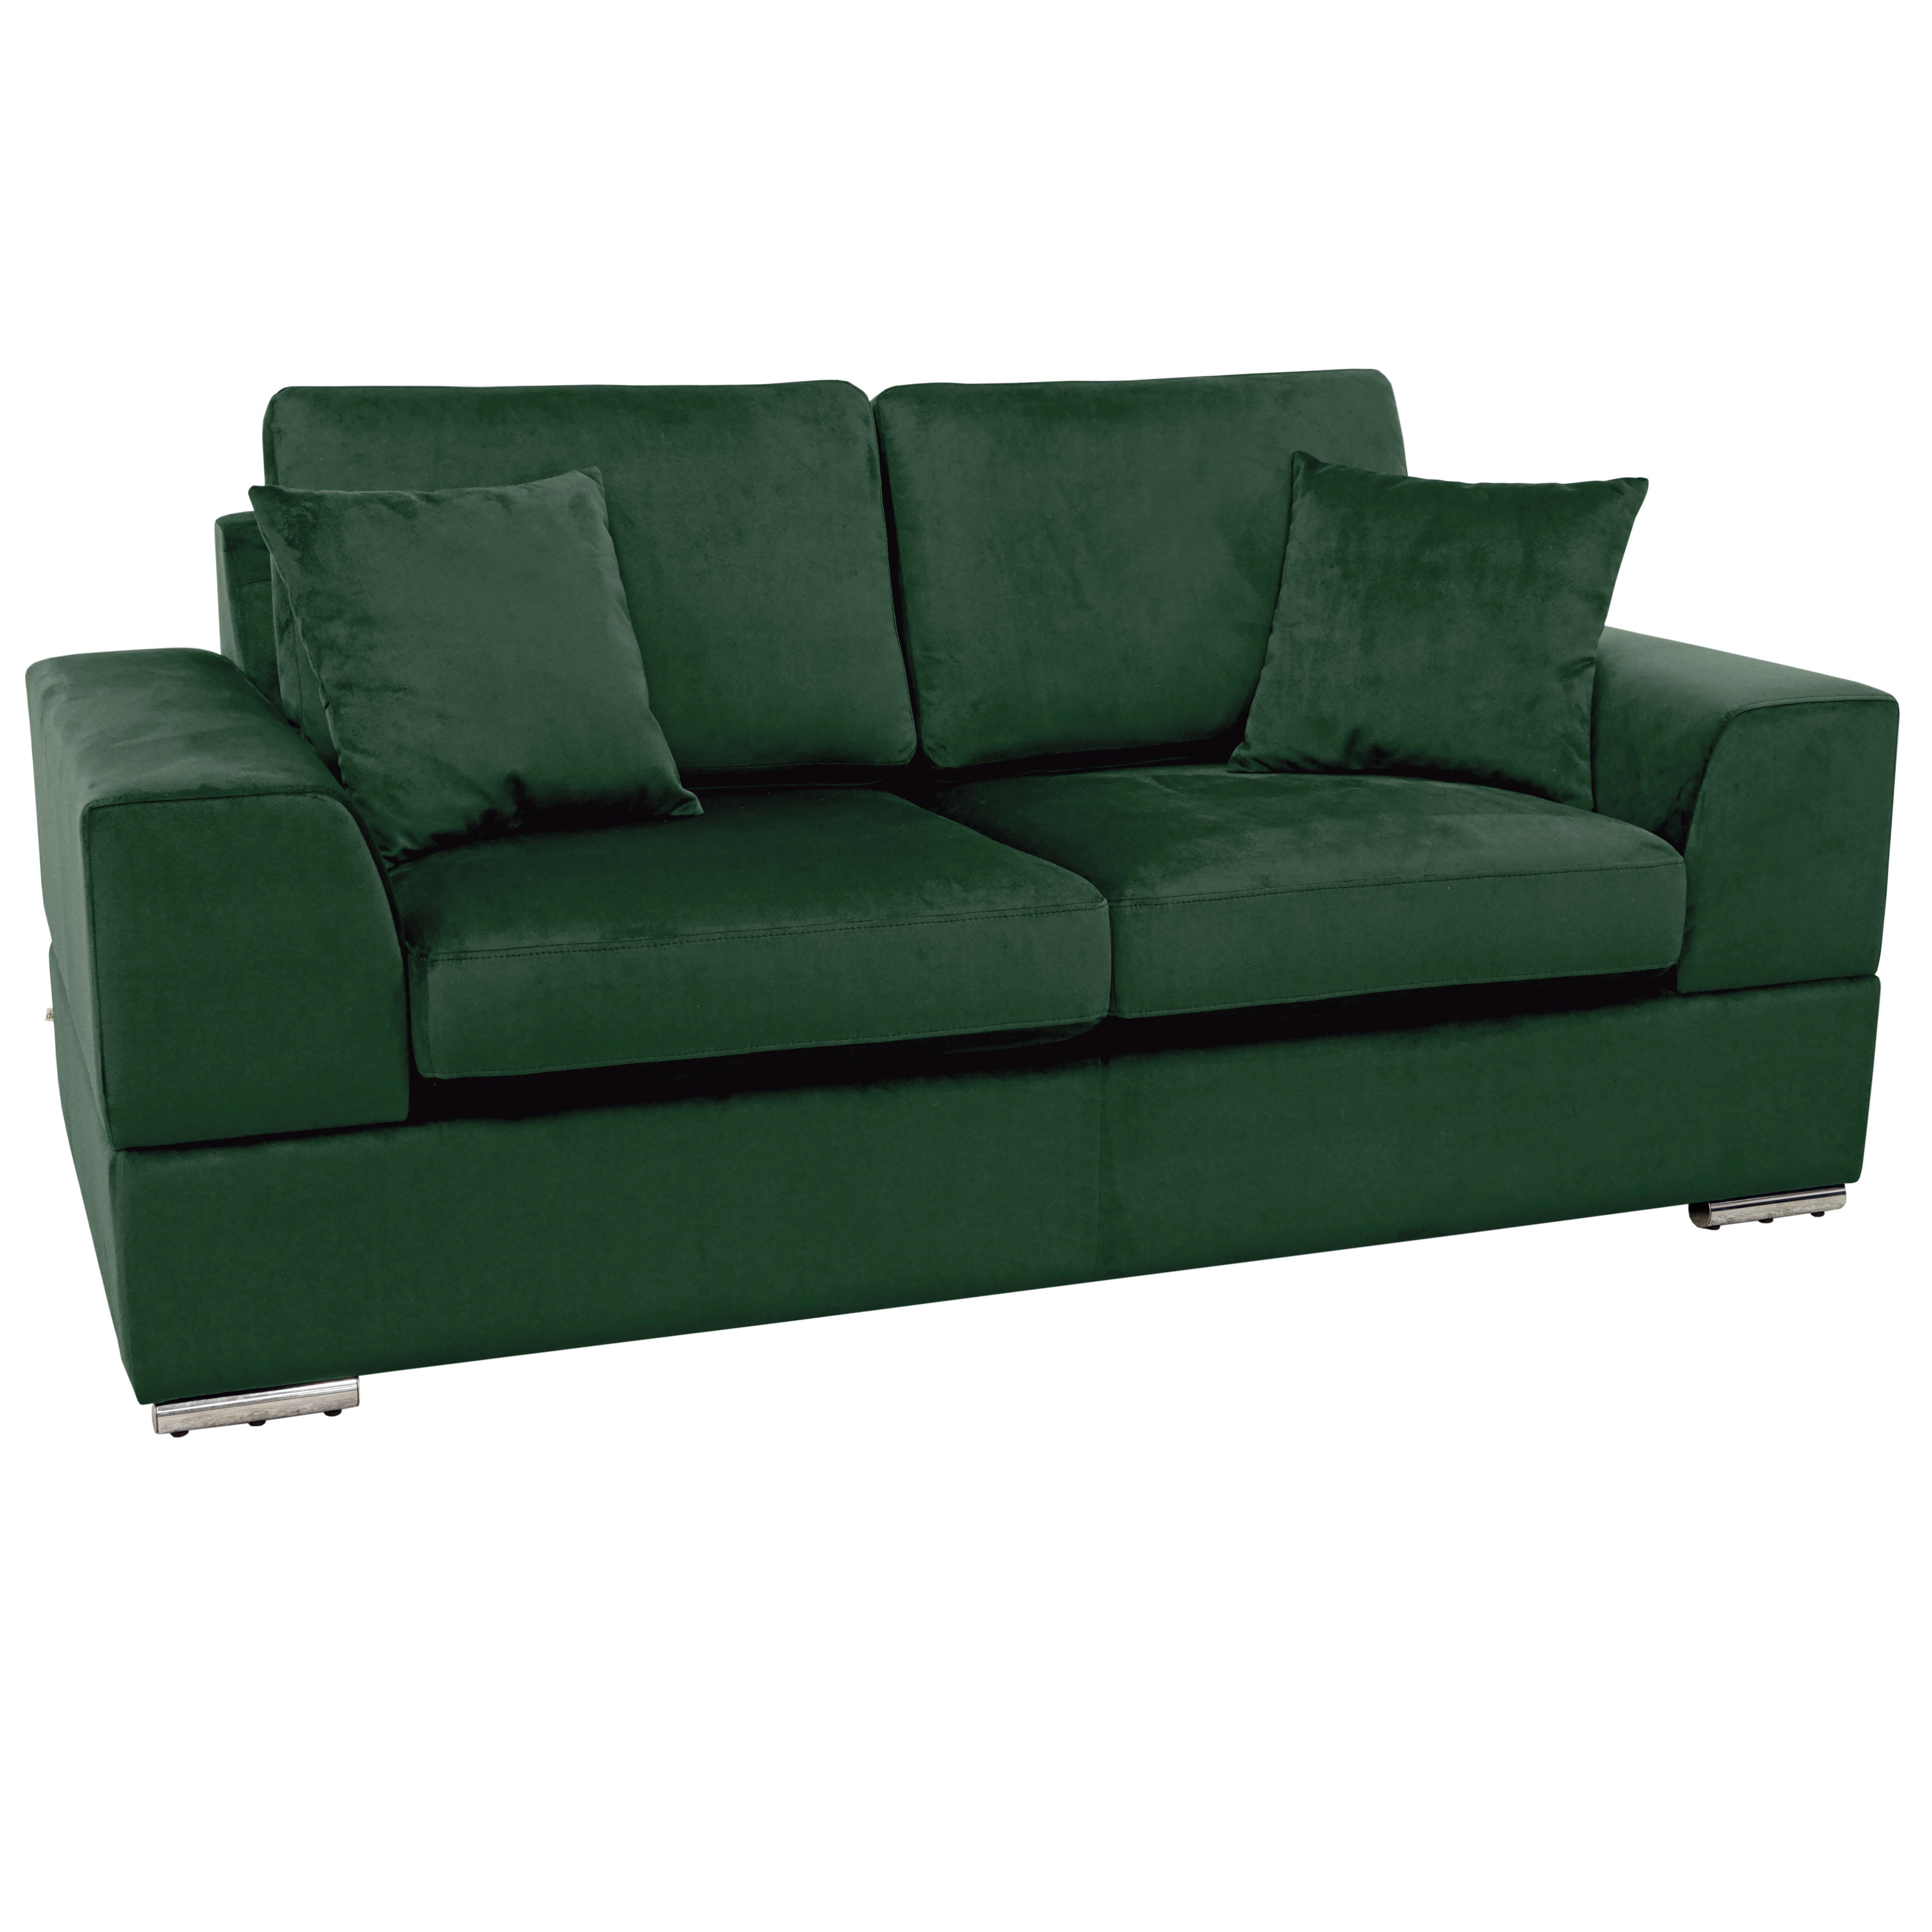 Varenna two seater sofa alba velvet forest green